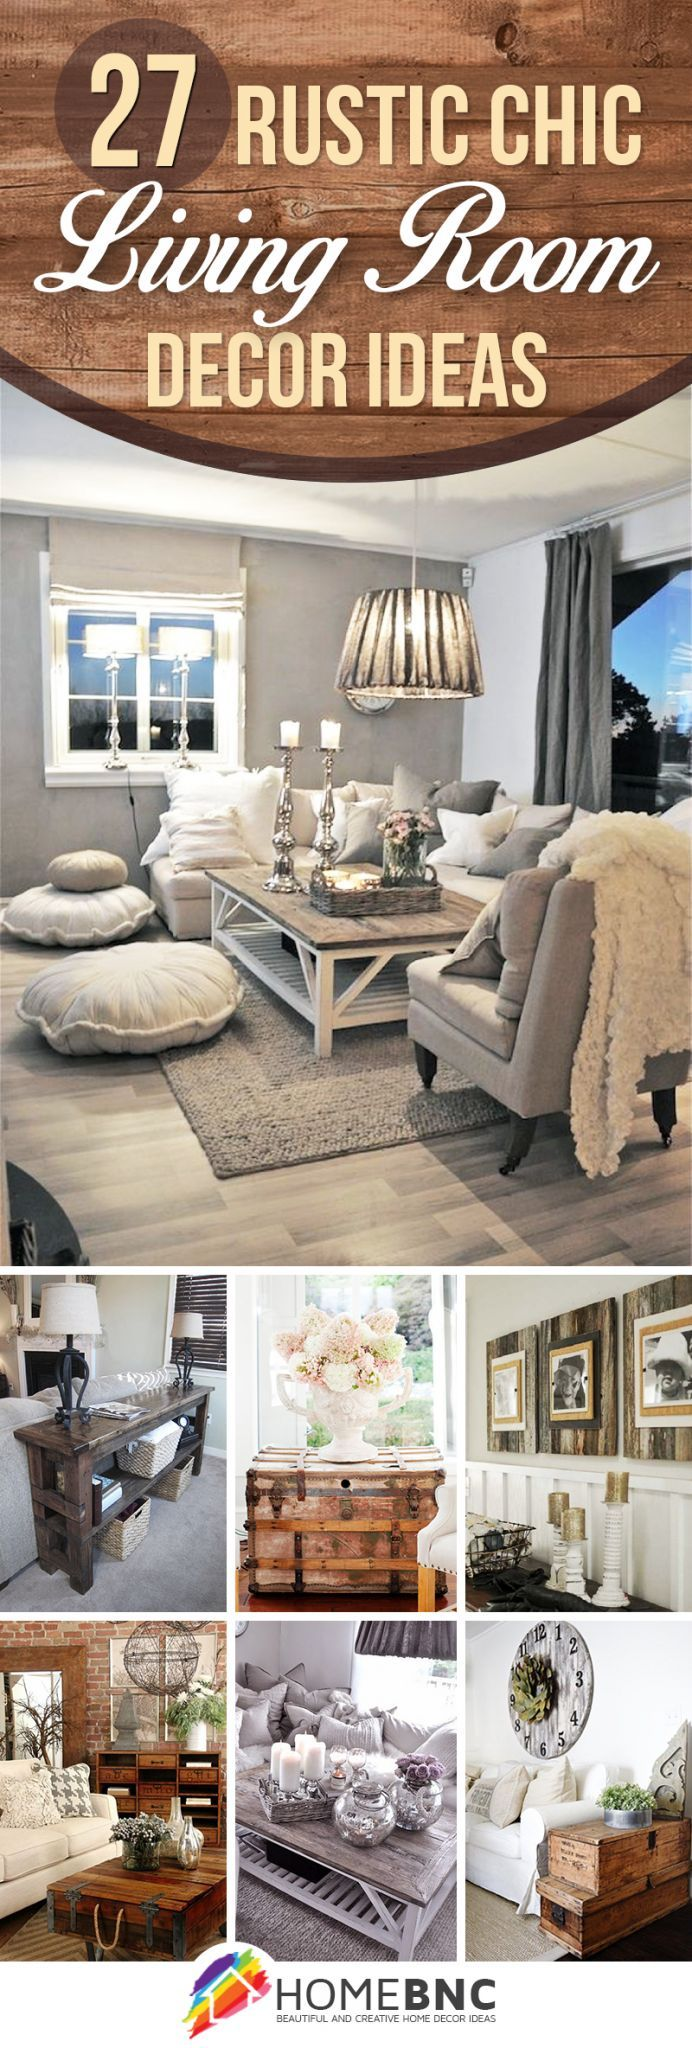 27 Breathtaking Rustic Chic Living Rooms That You Must See Decor For RoomDiy